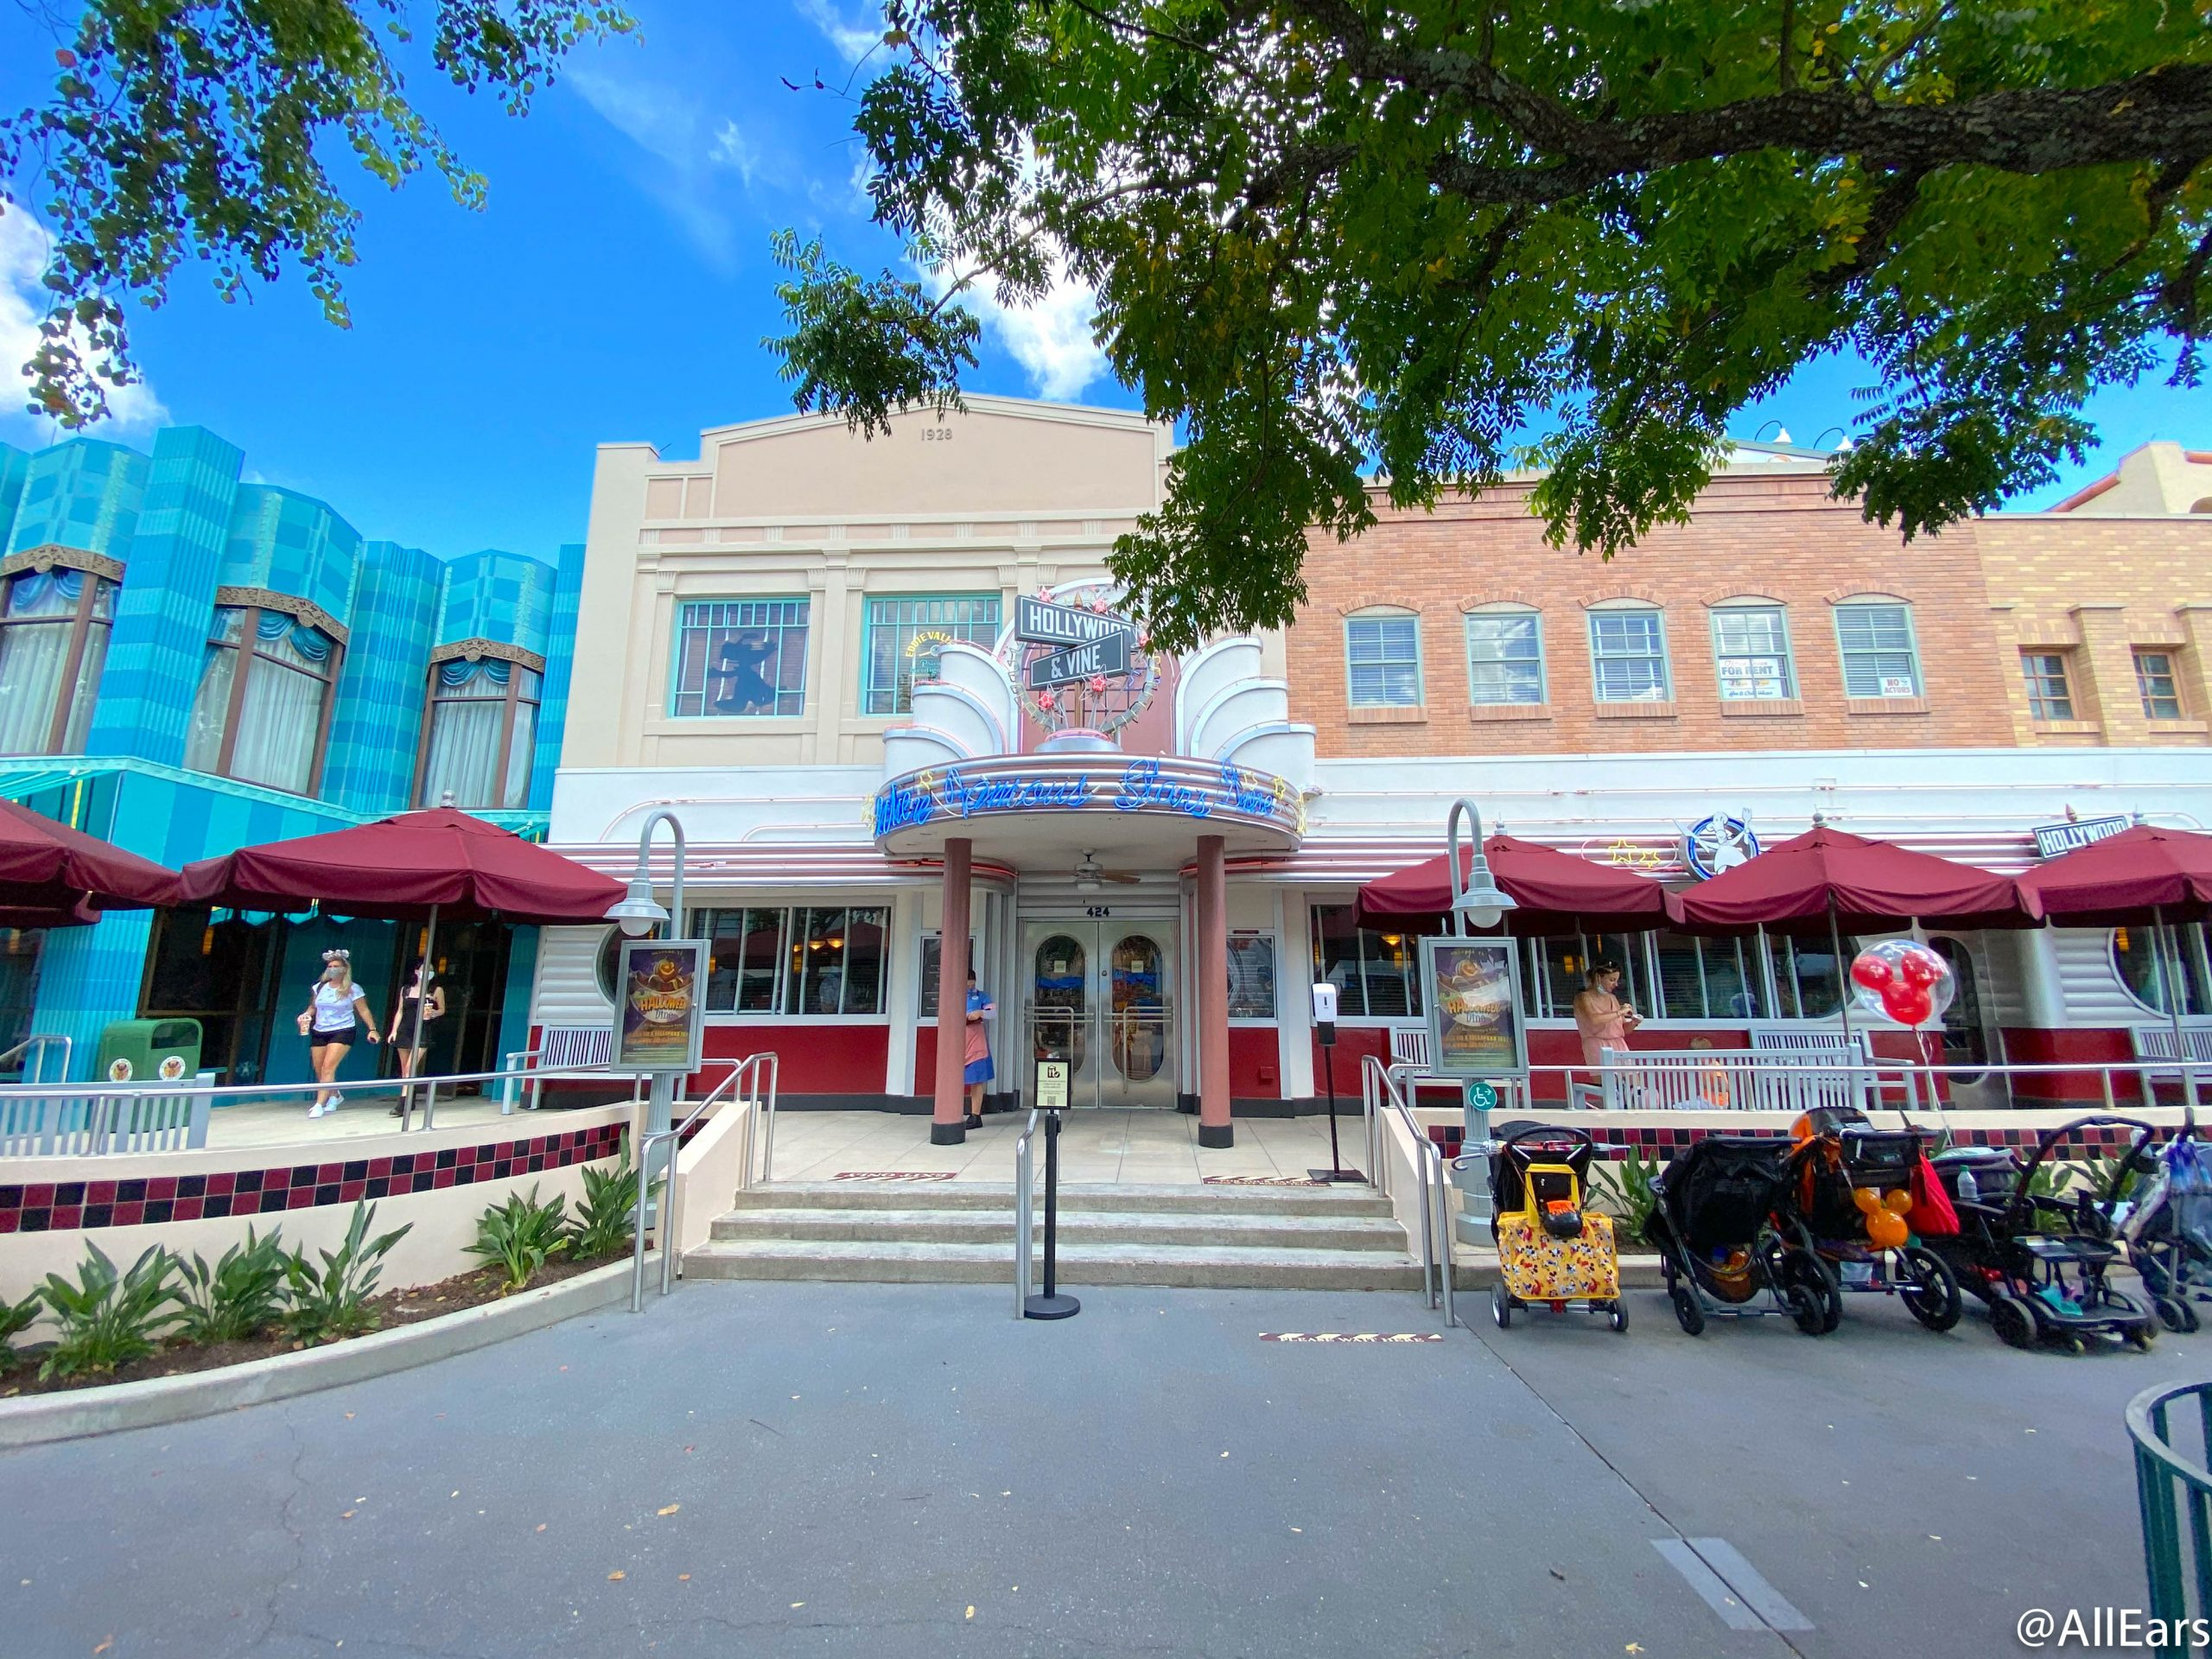 allears.net - Rachel Franko - NEWS: The Orlando Hotel and Restaurant Workers Movement Provides Discussion Details About Employee Layoffs in Disney World